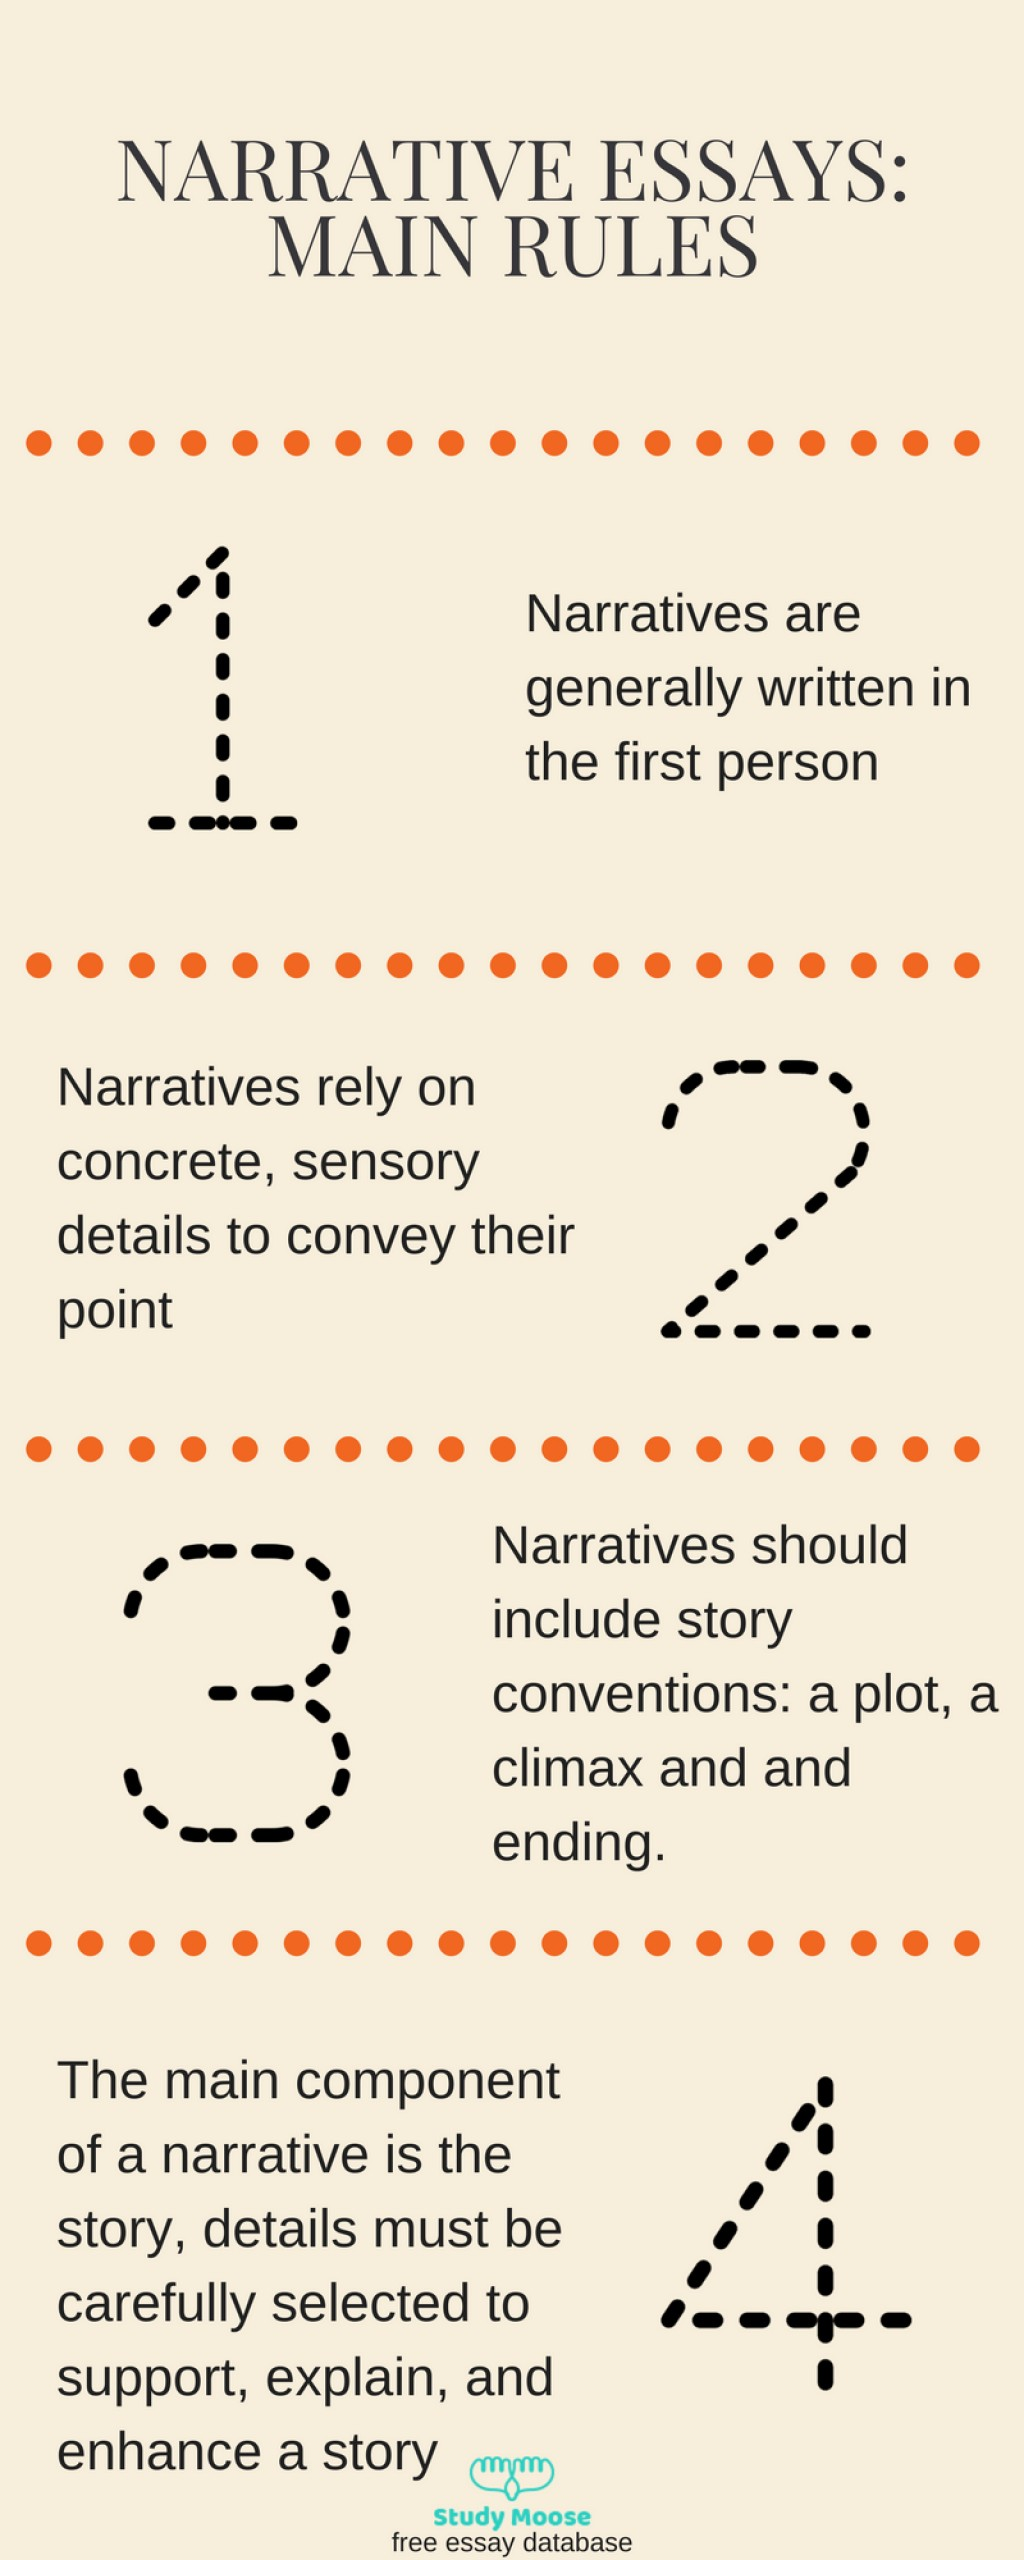 How To Write a Narrative Essay Outline: Do's and Dont's